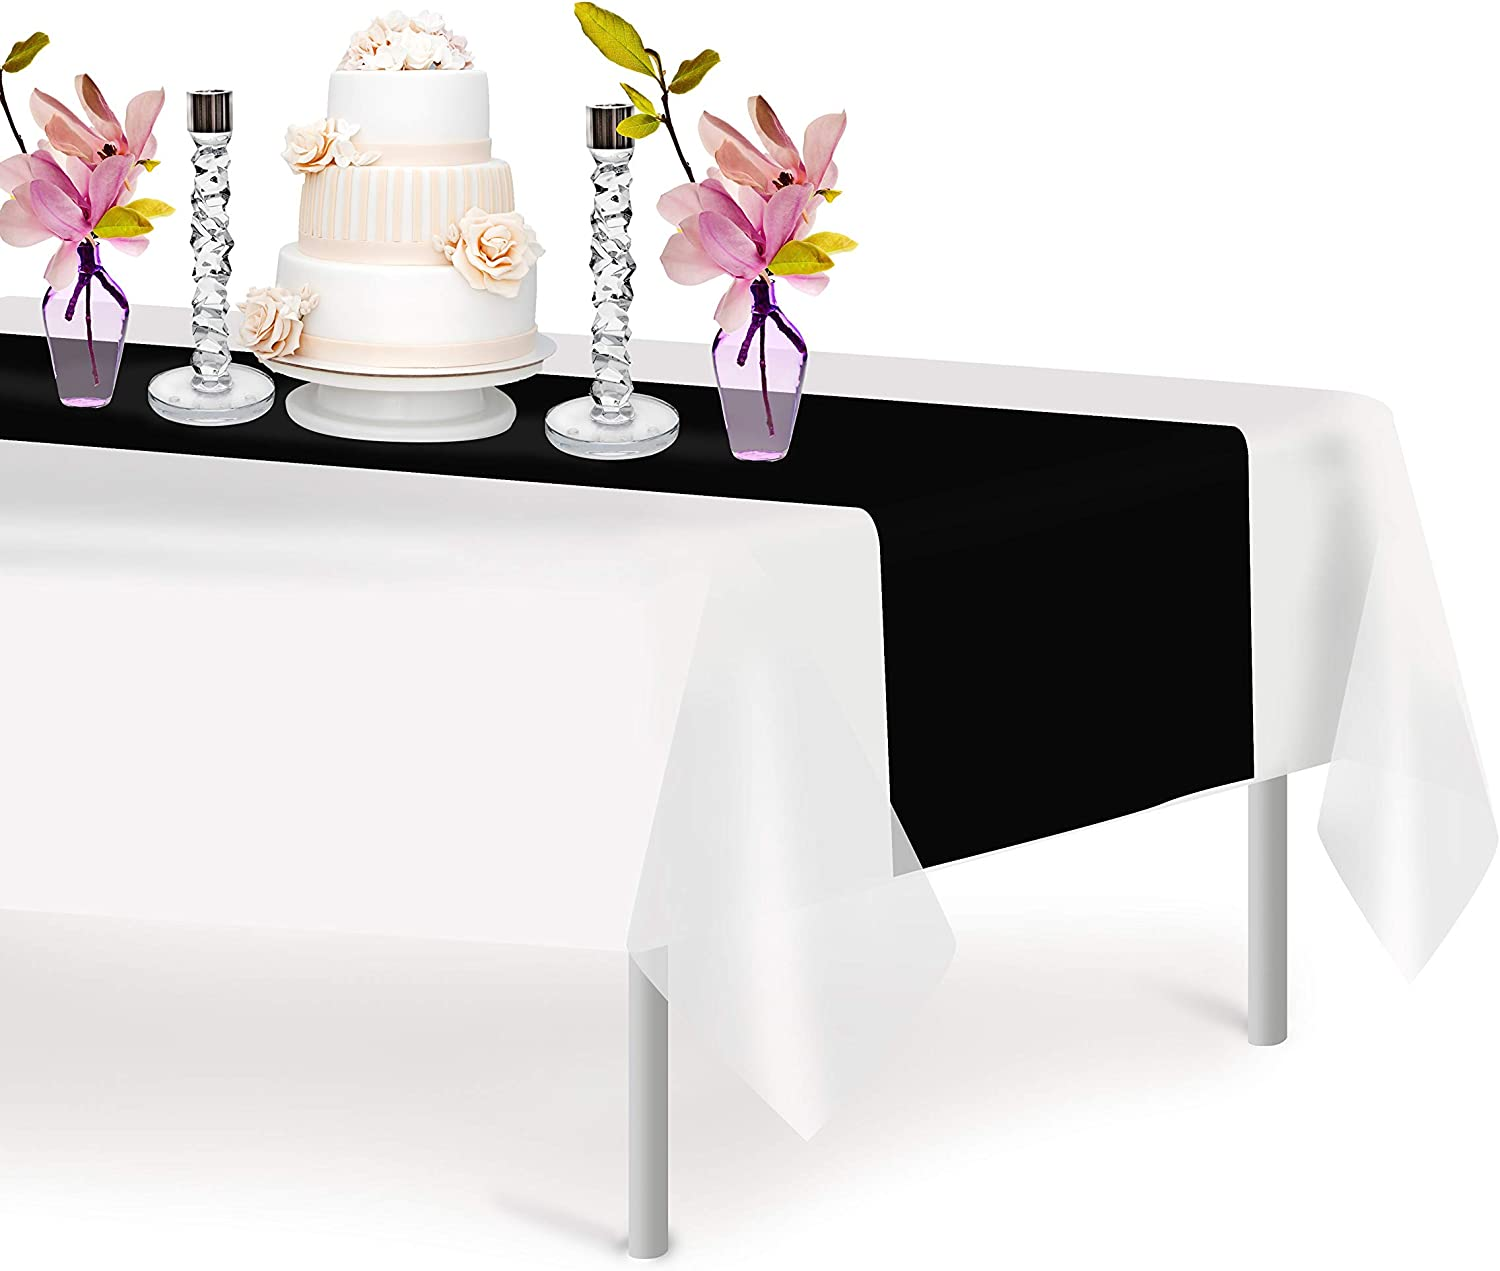 Black 6 Pack Premium Disposable Plastic Table Runner 14 x 108 Inch. Decorative Table Runner for Dinner Parties & Events, Decor By Grandipity